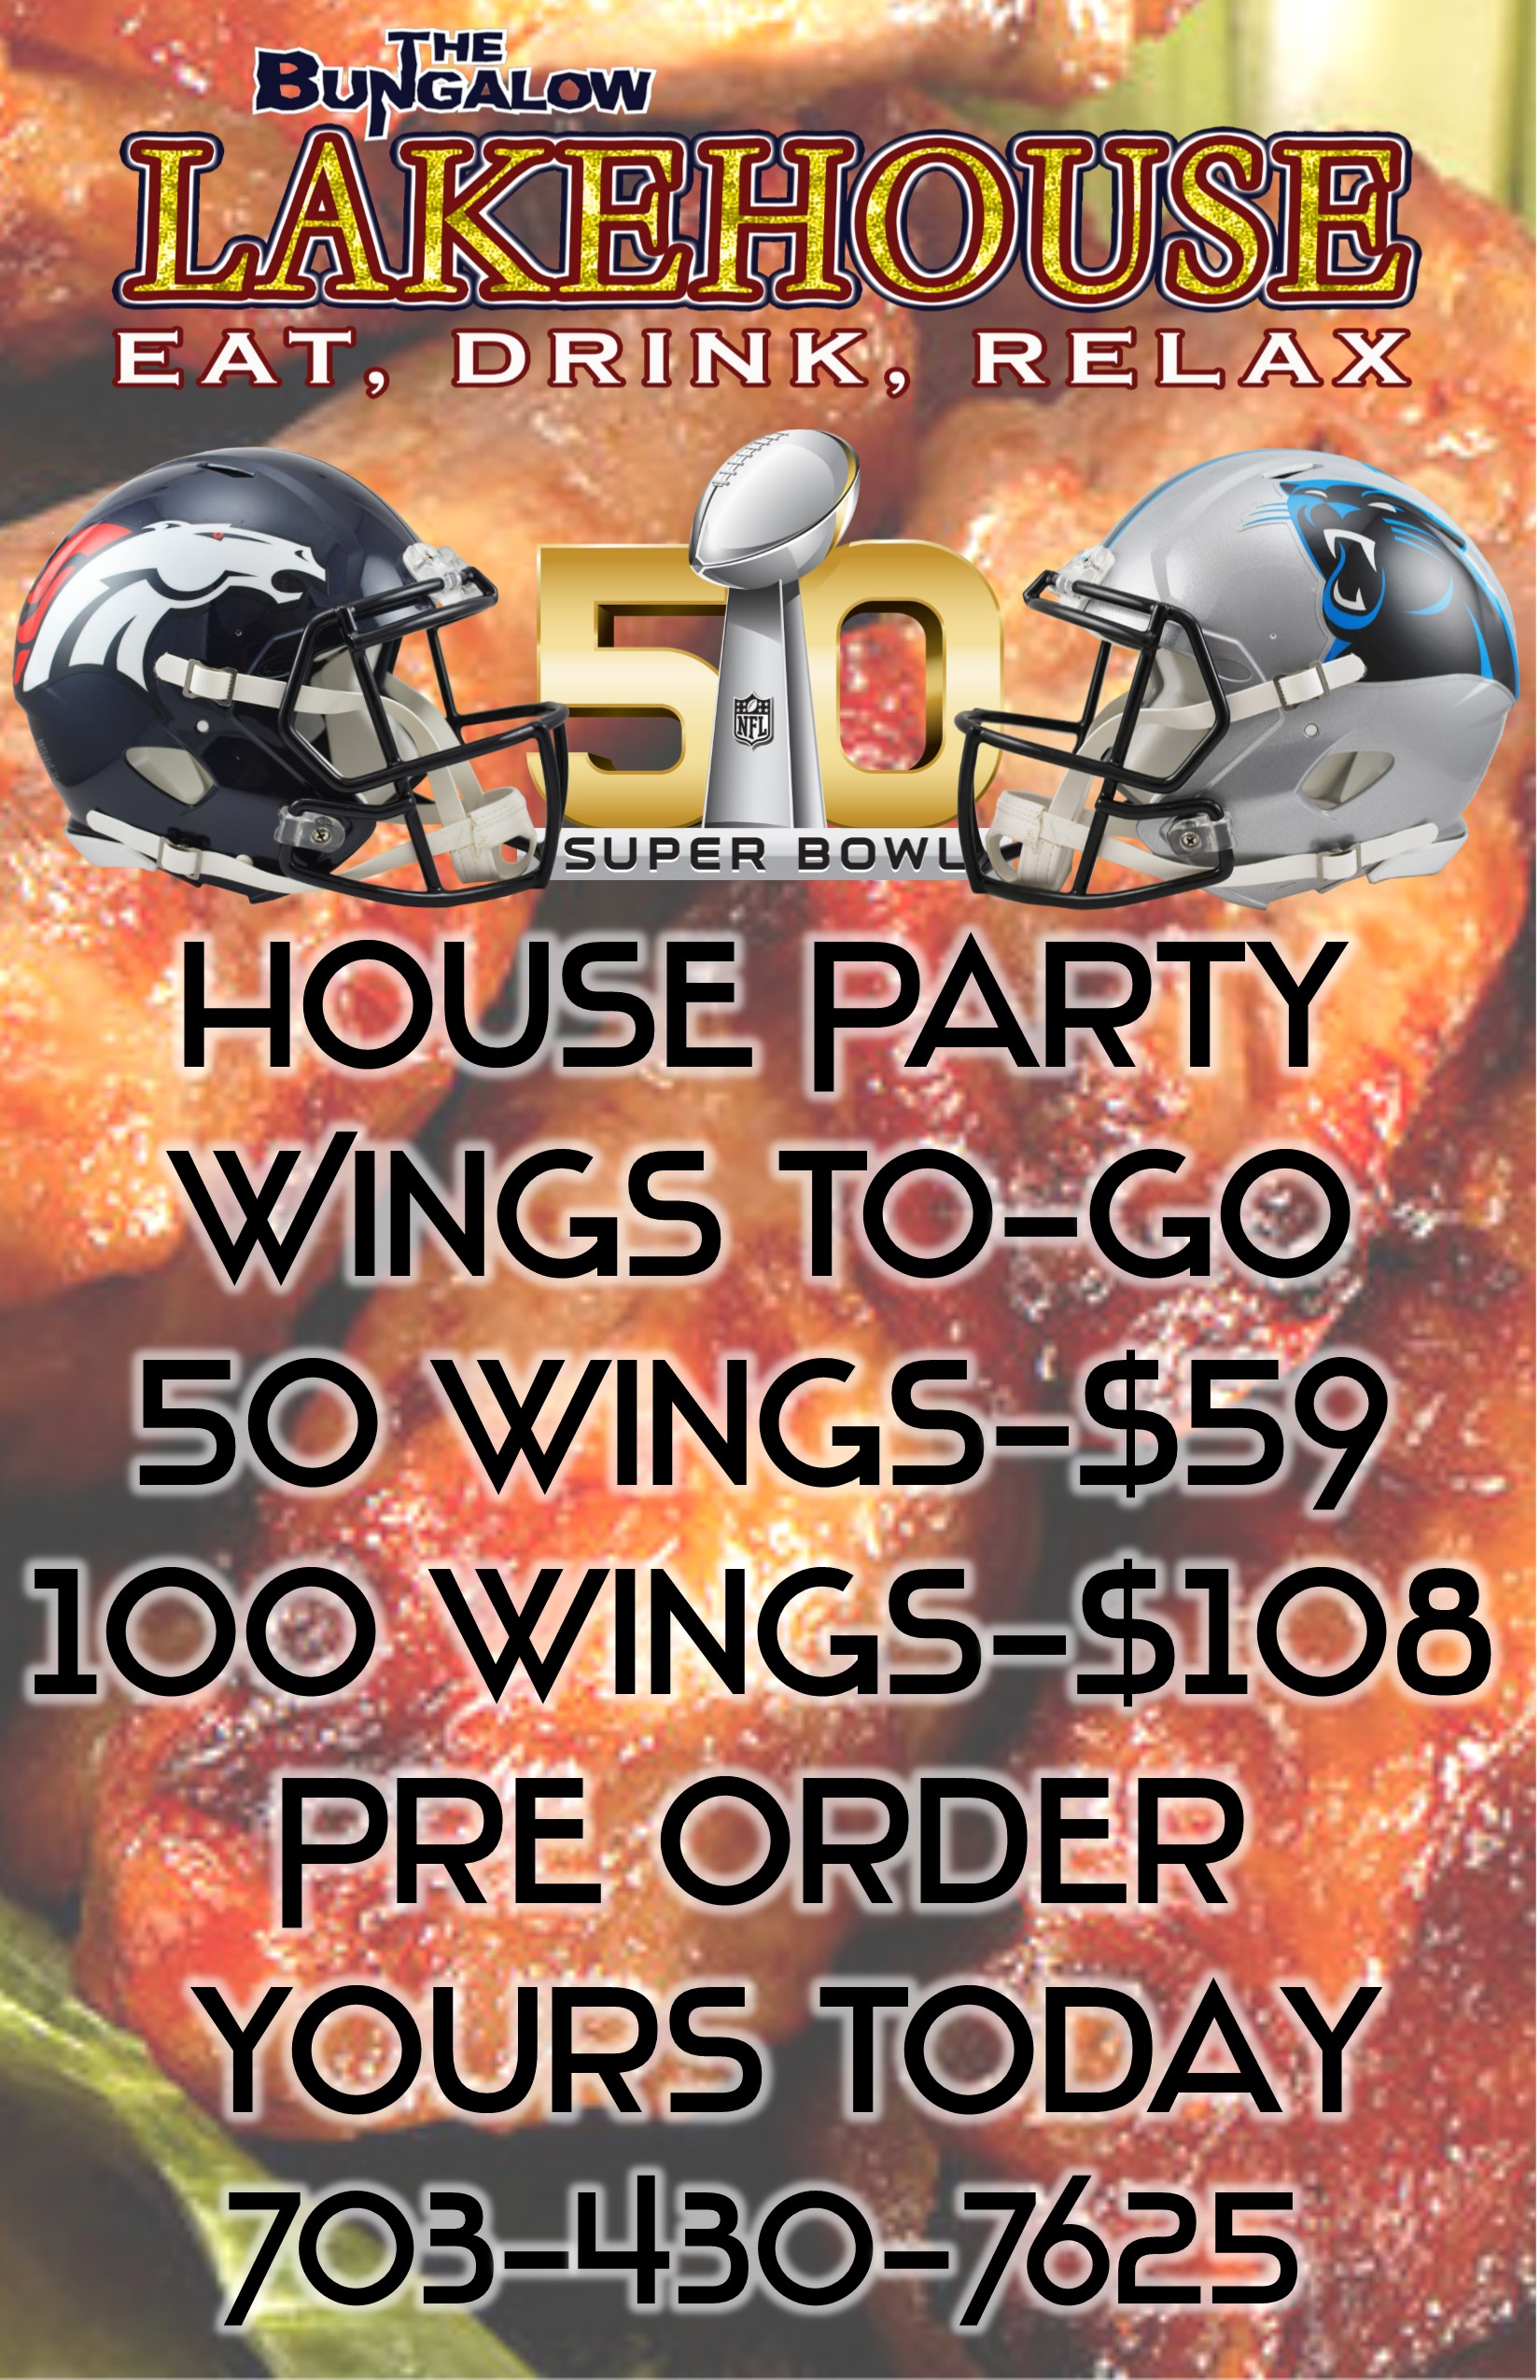 lakehouse togo wings super bowl